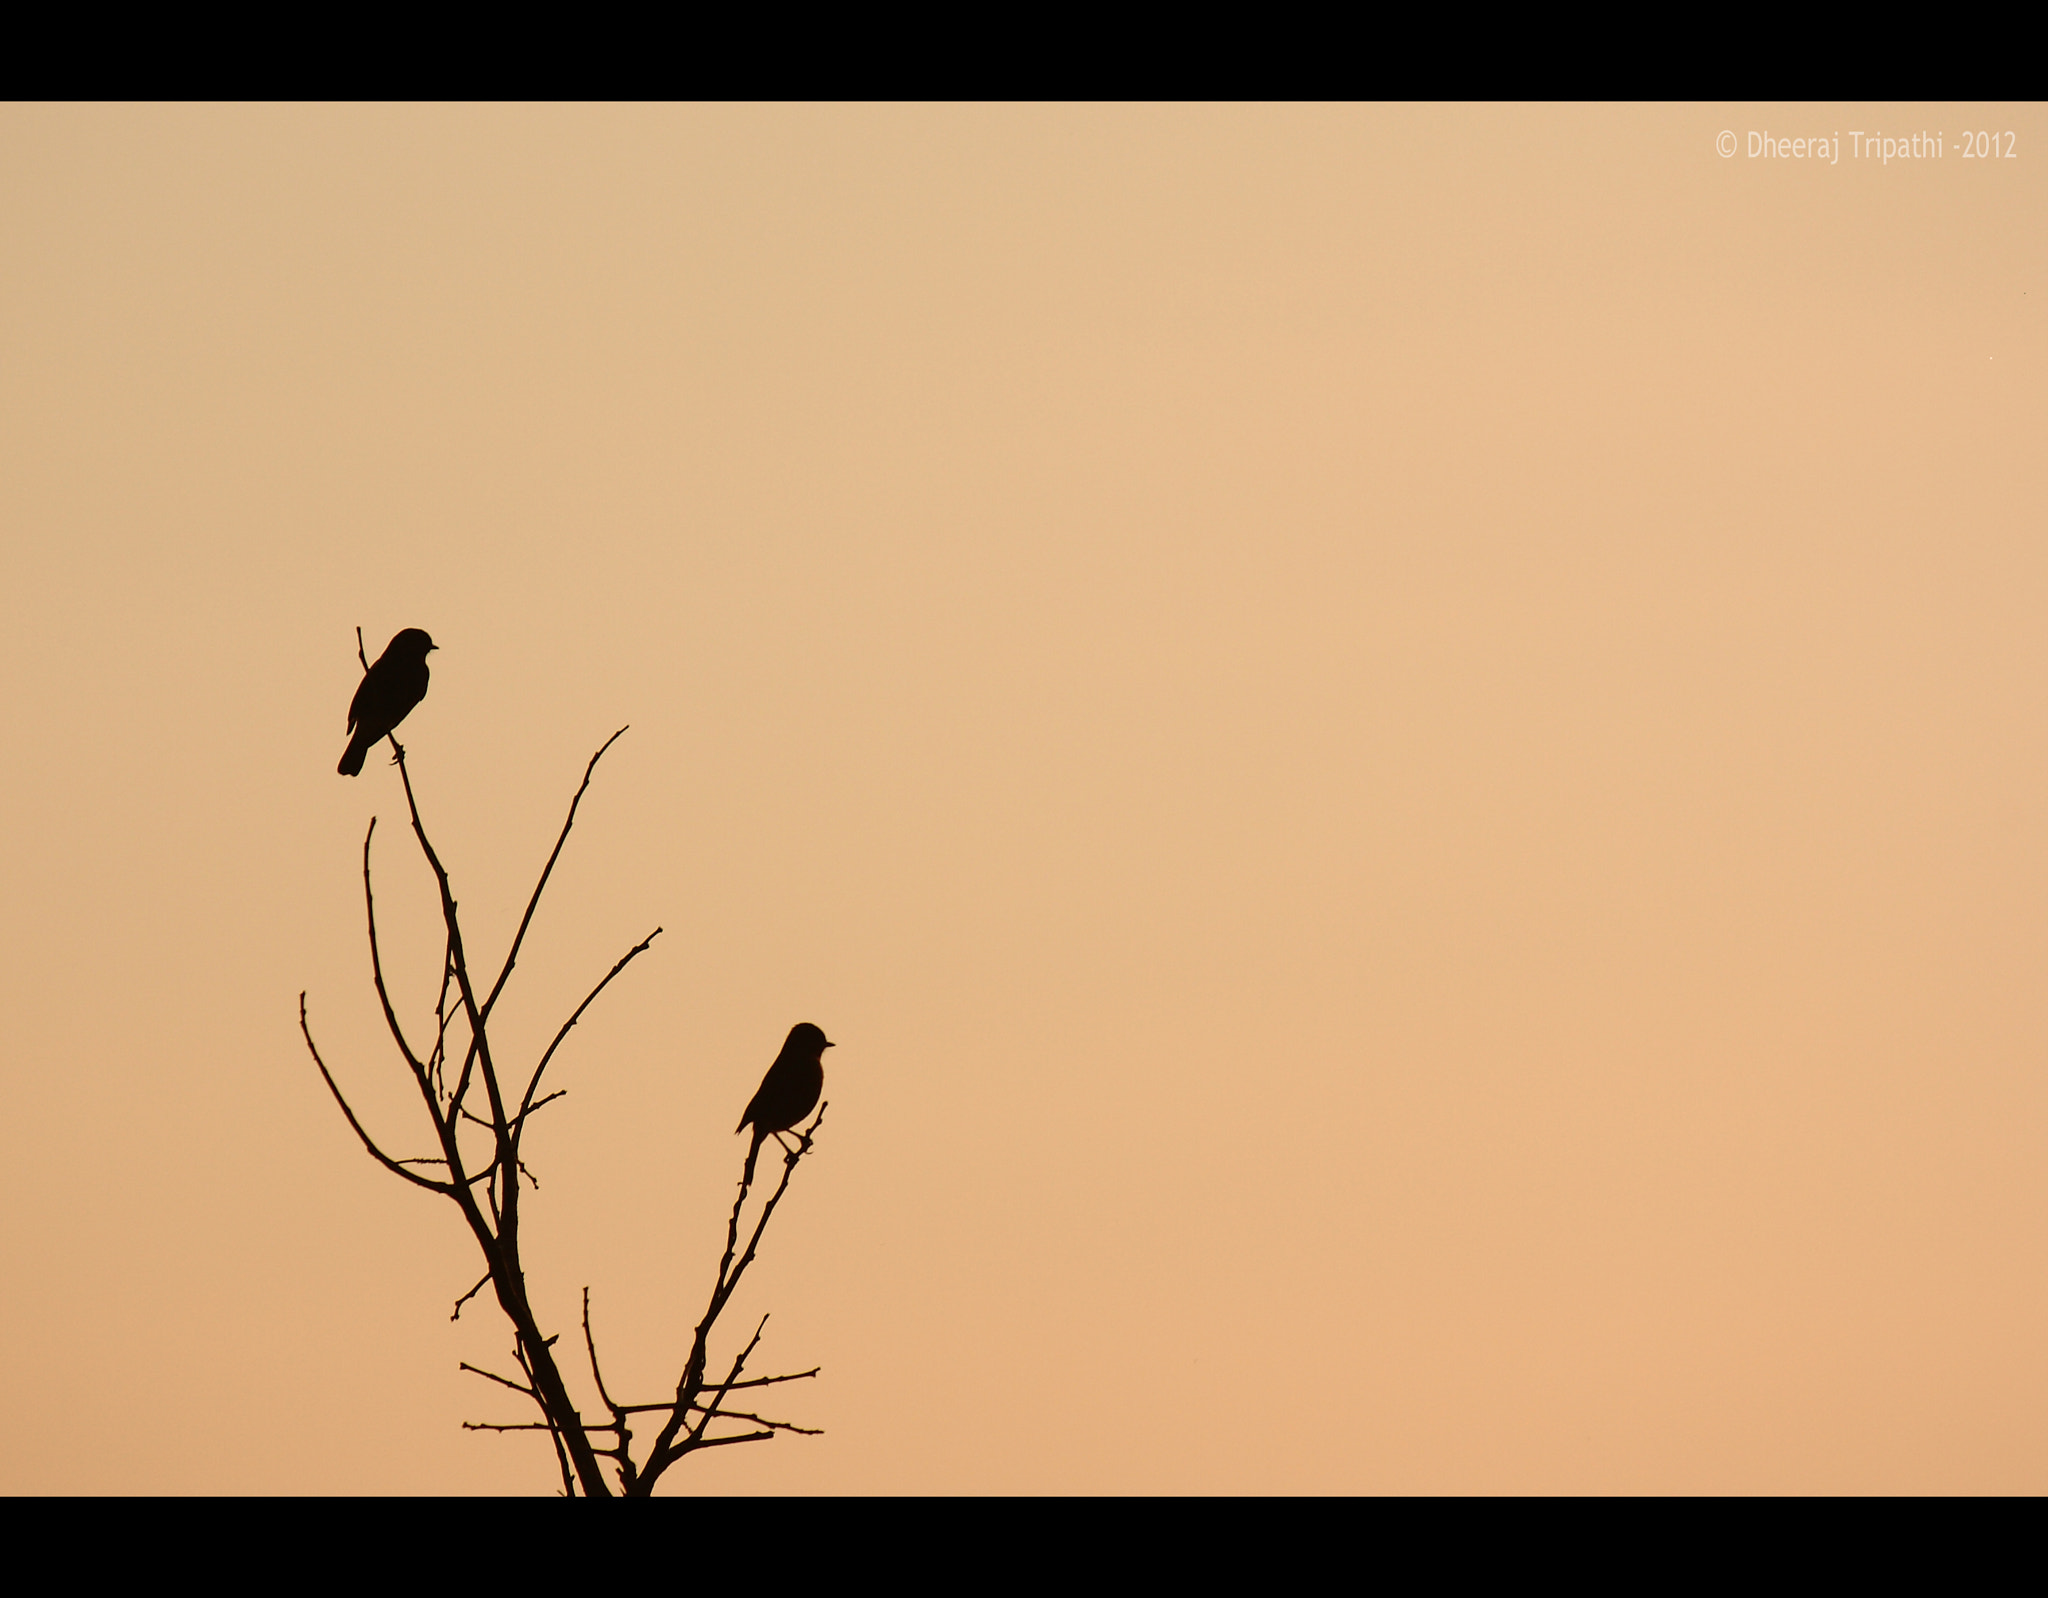 Photograph Untitled!! by Dheeraj Tripathi on 500px